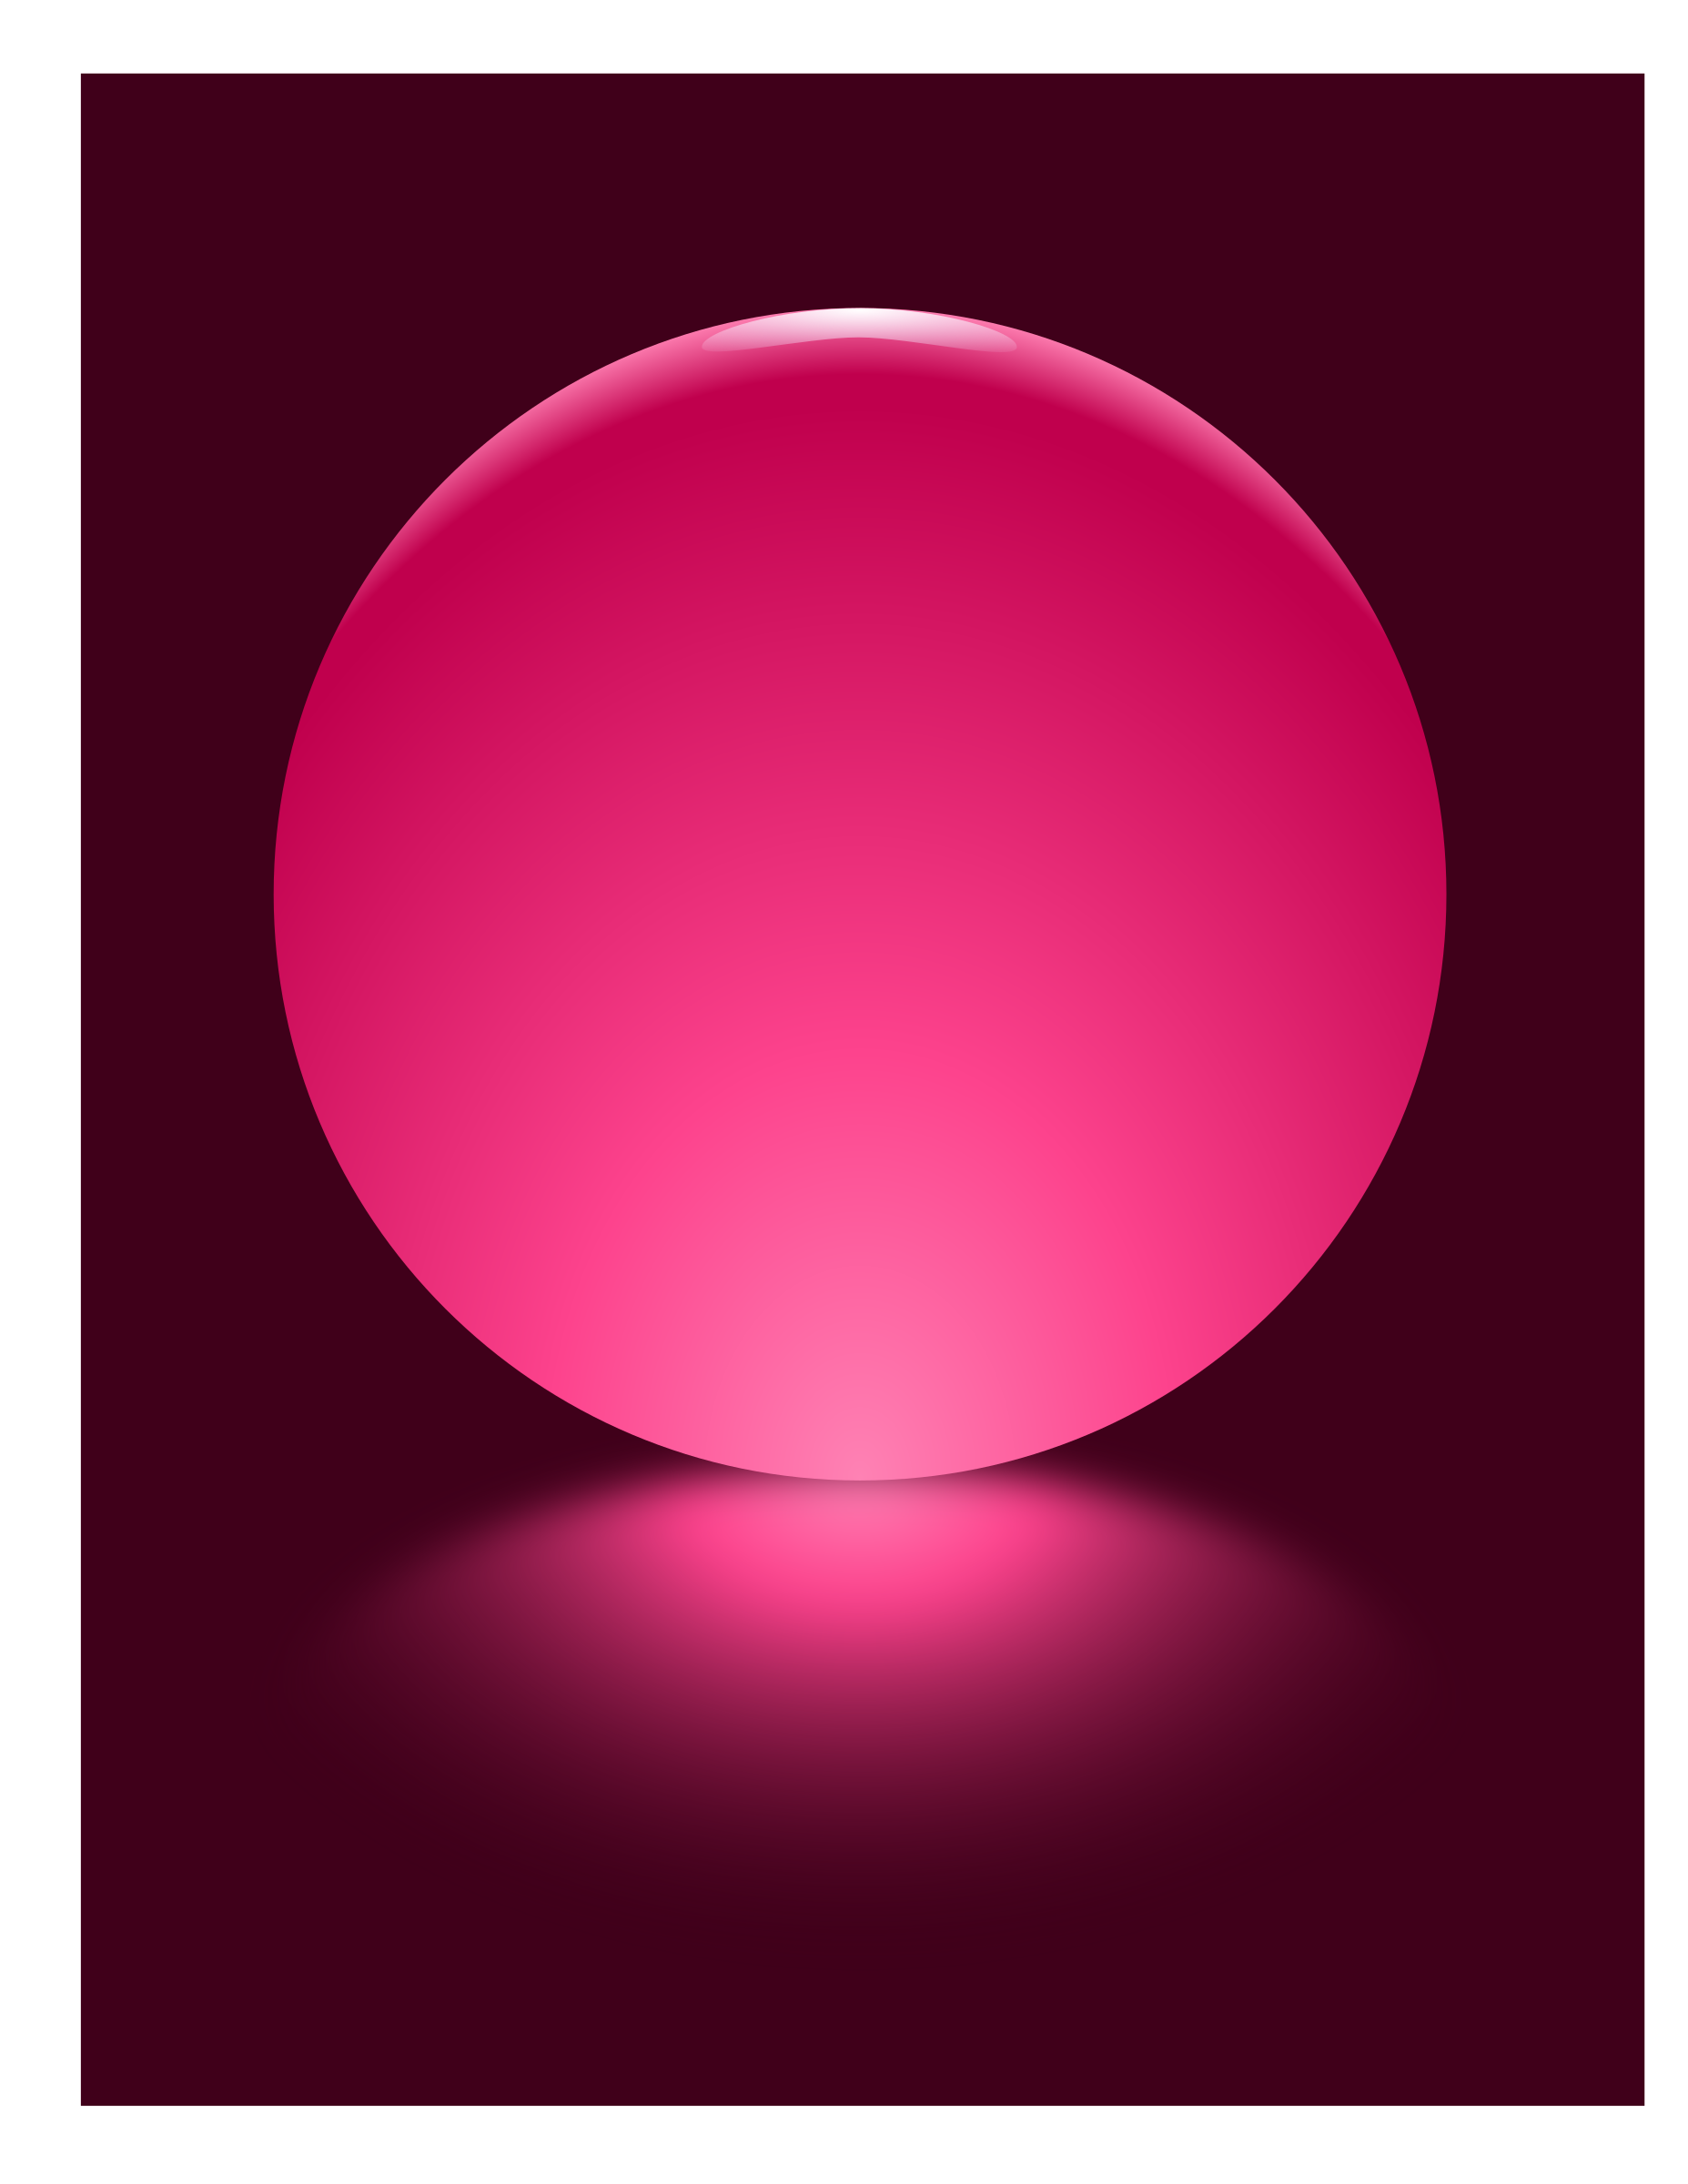 Pink Sphere Blurred Reflection by djpaul